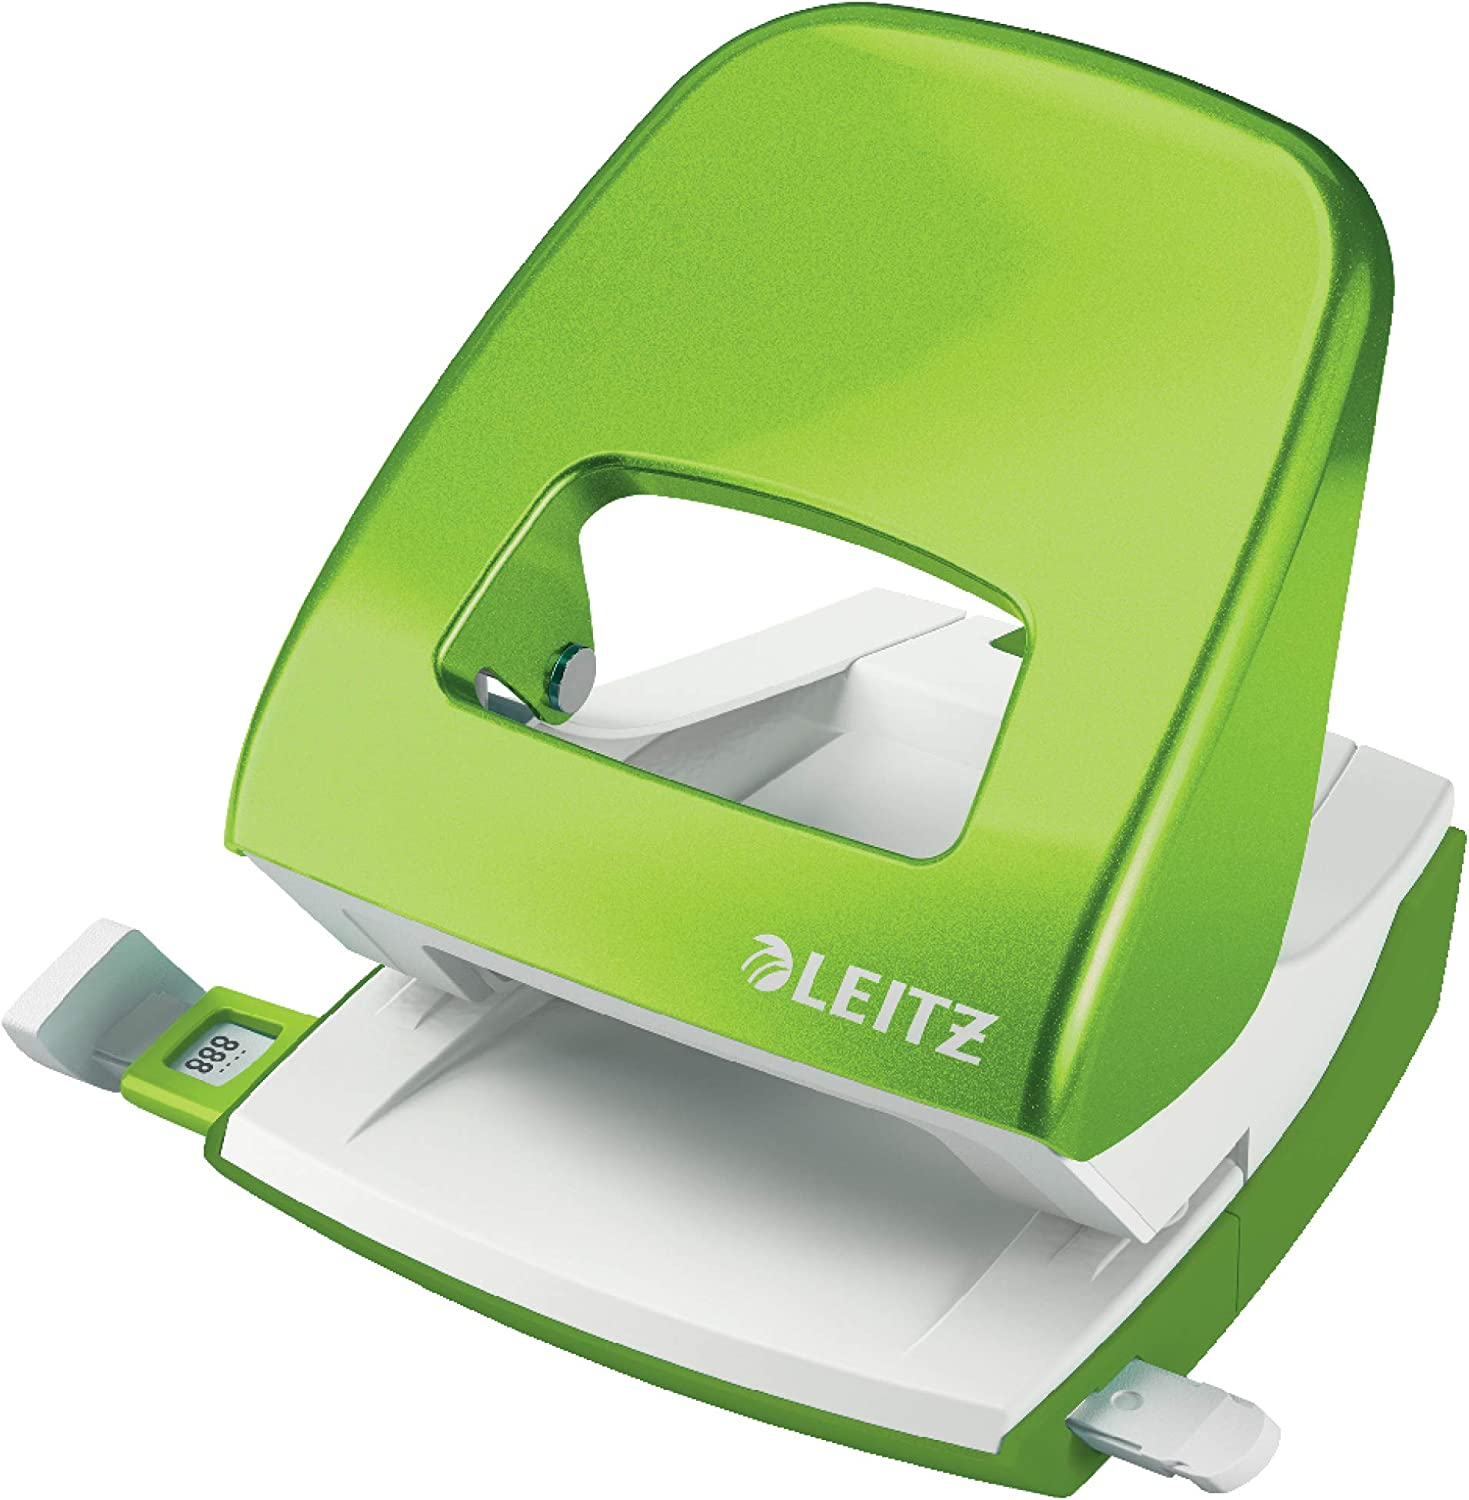 Leitz 50082054 Hole Punch 30 Sheets Format Bar with Classic Guide Mark Popular brand in the world